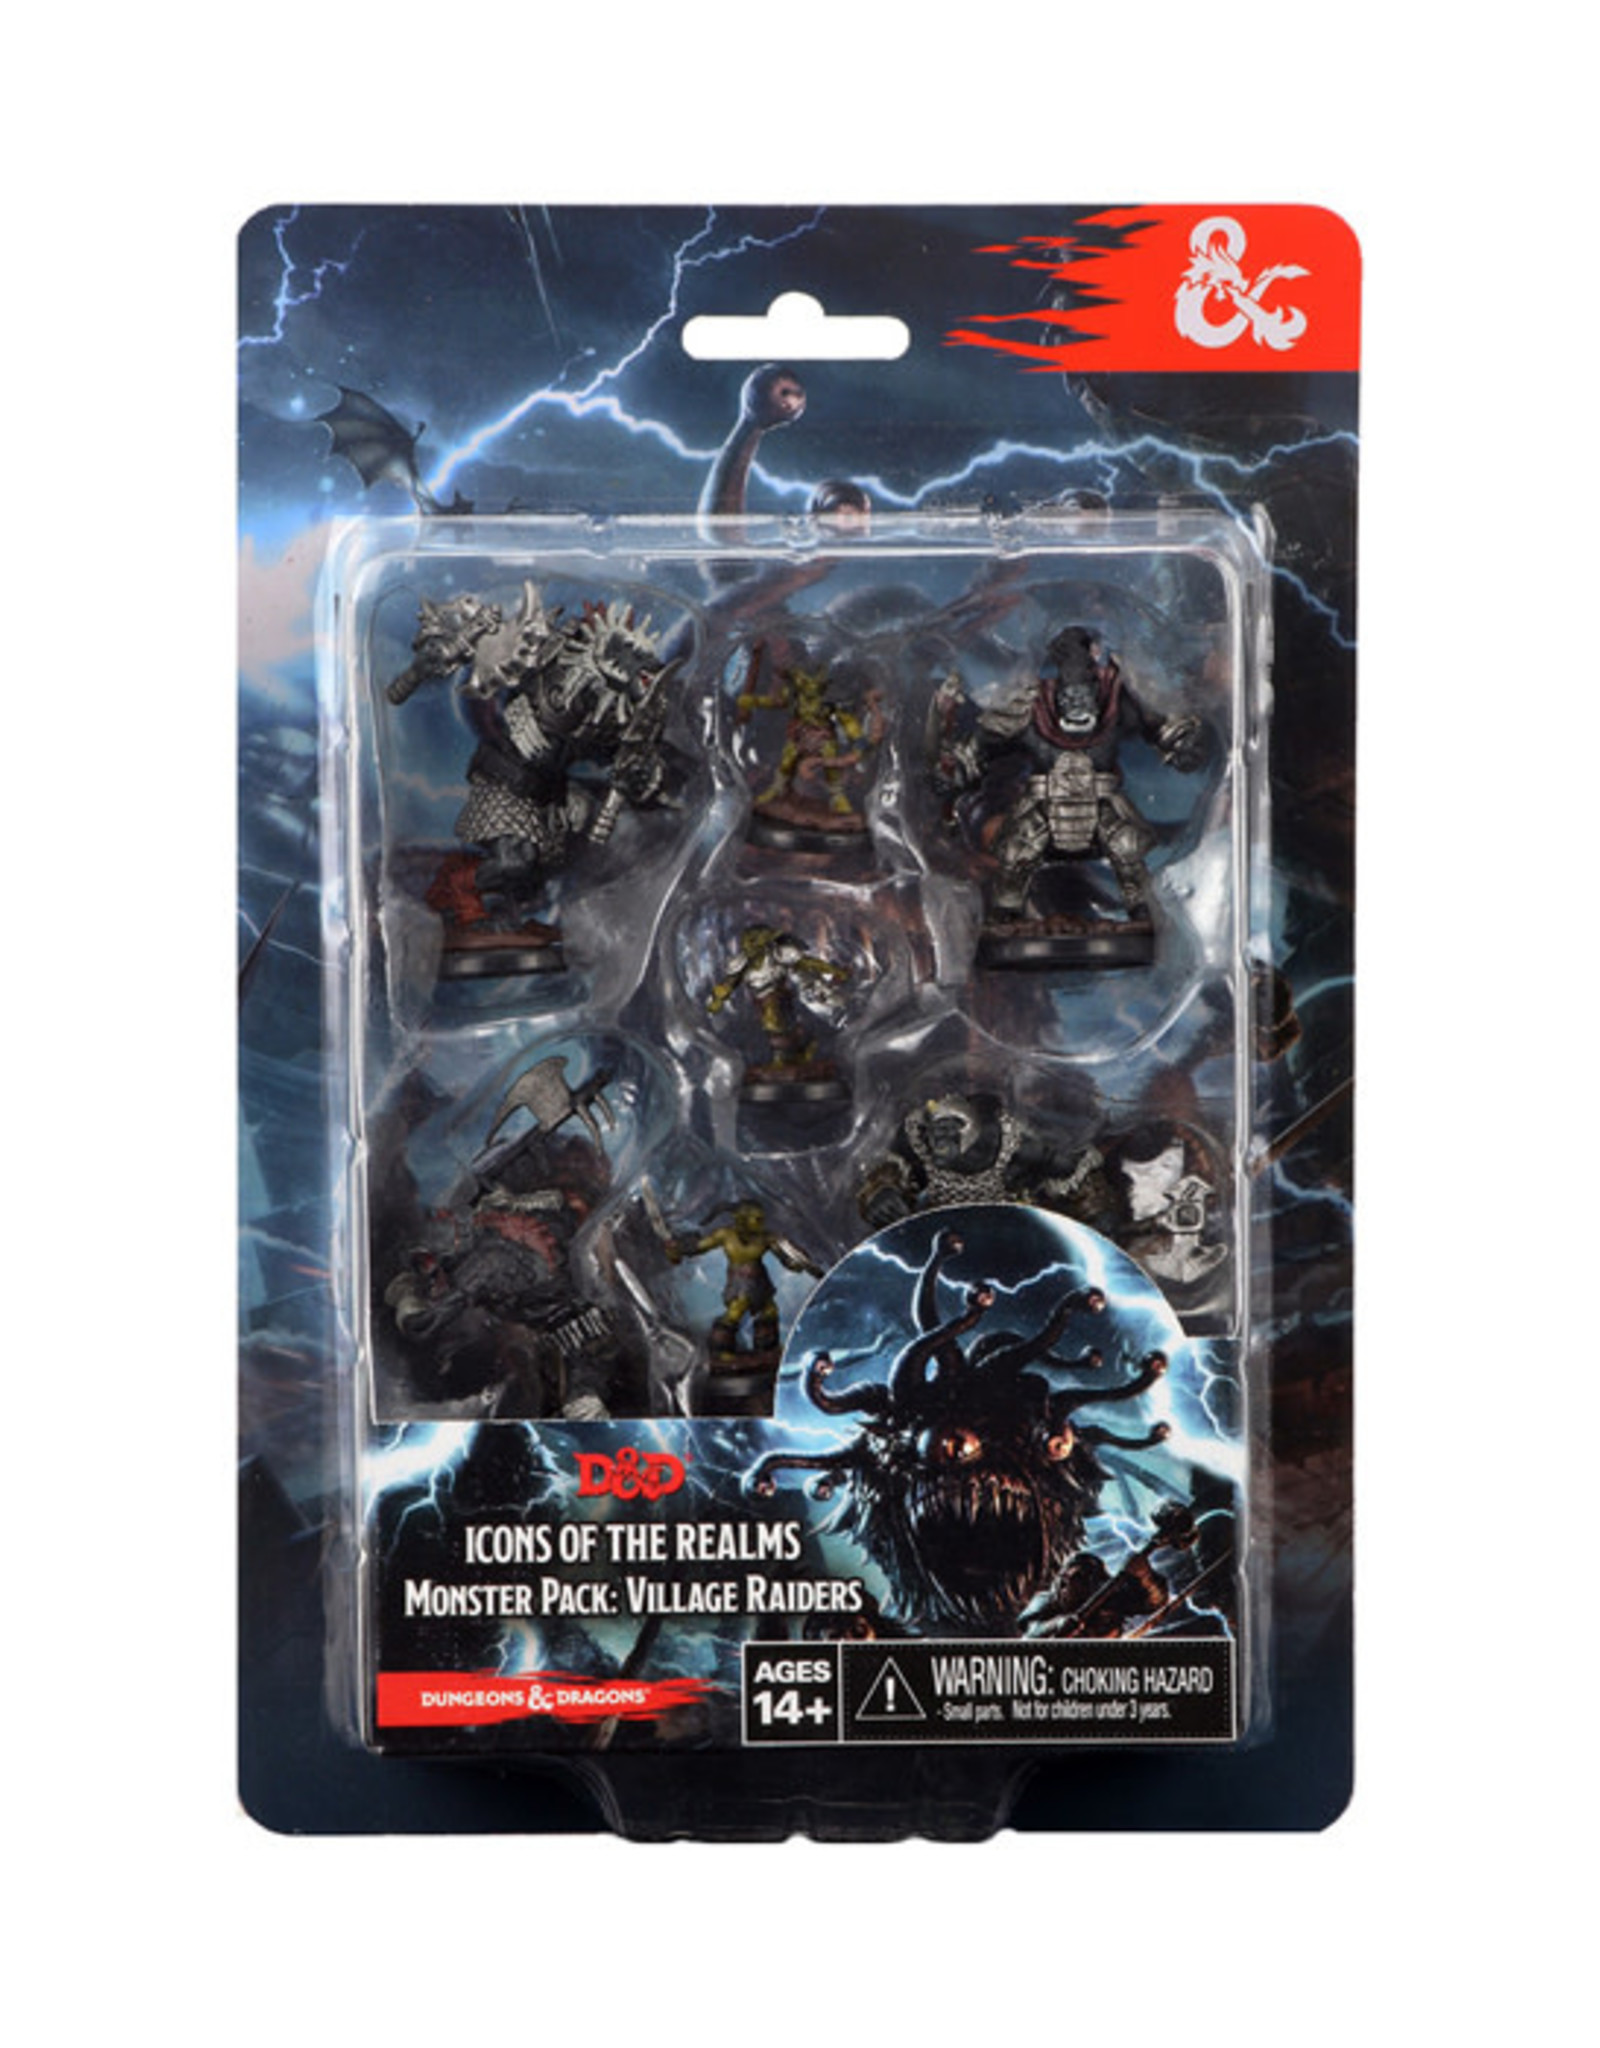 Dungeons & Dragons Dungeons & Dragons: Icons of the Realms - Monster Pack - Village Raiders